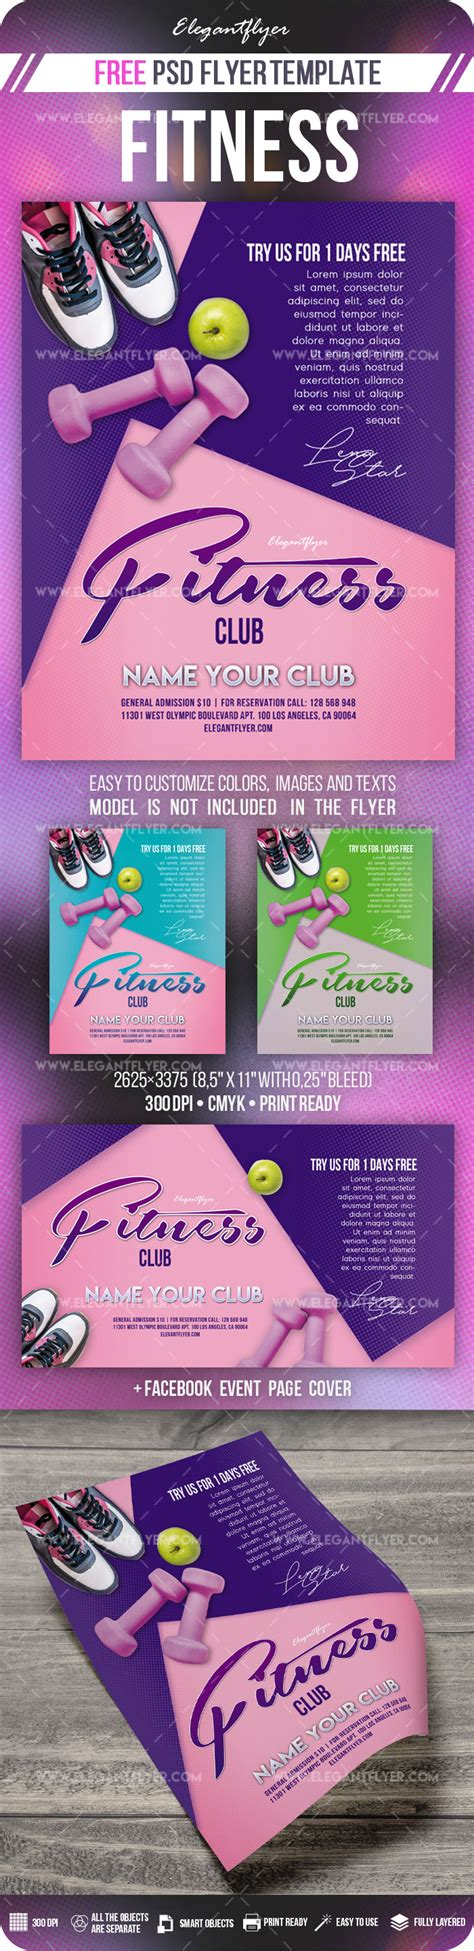 Flyer Fitness Free Templates